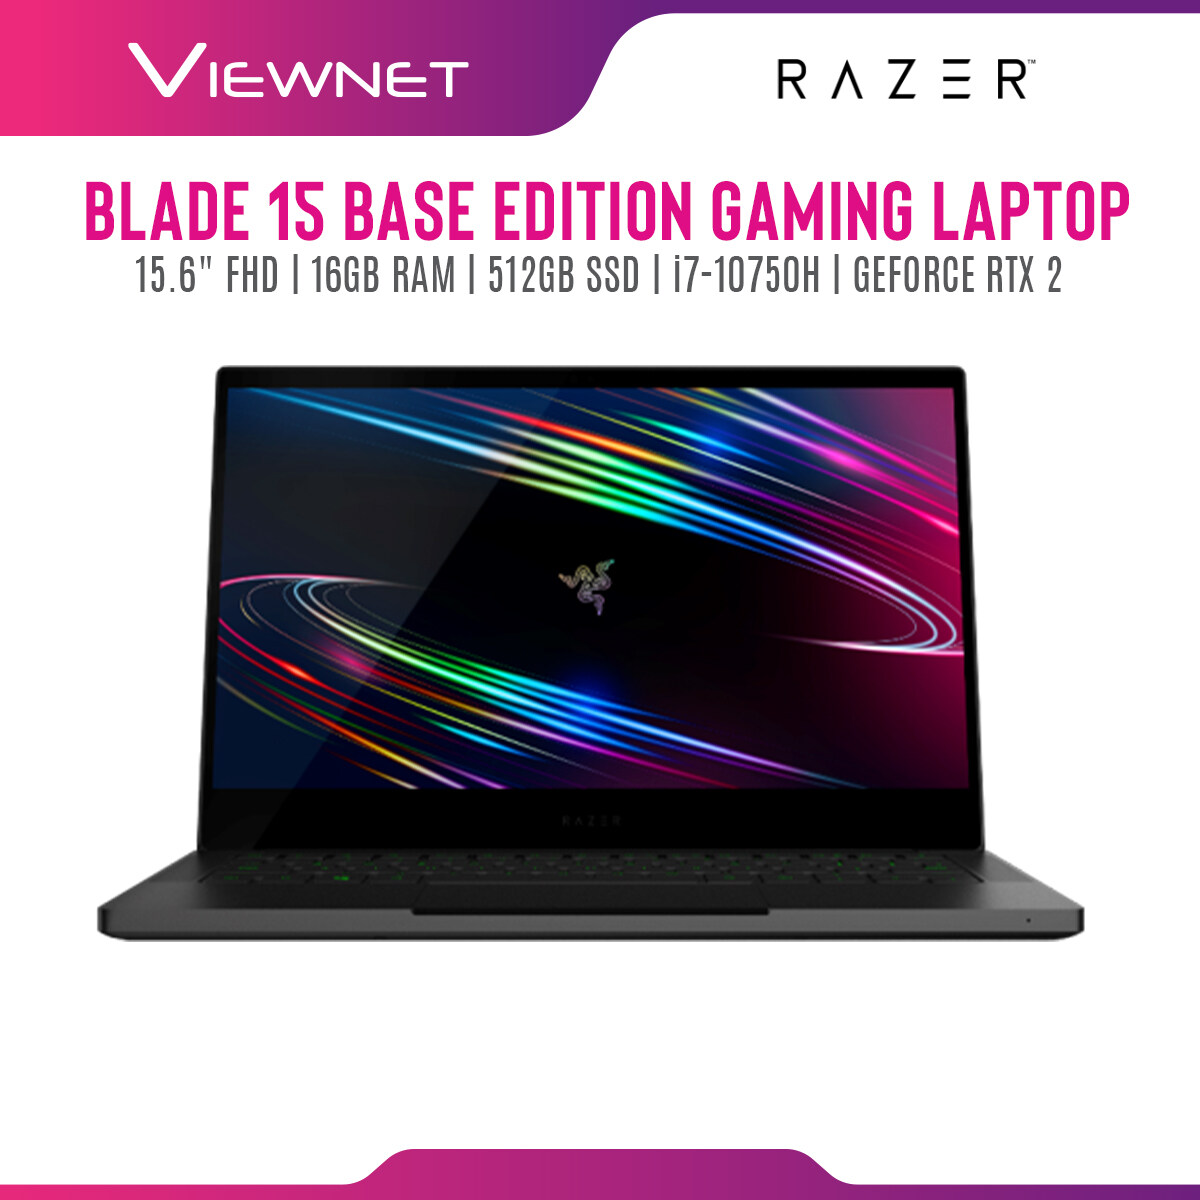 RAZER BLADE 15 BASE EDITION 15.6